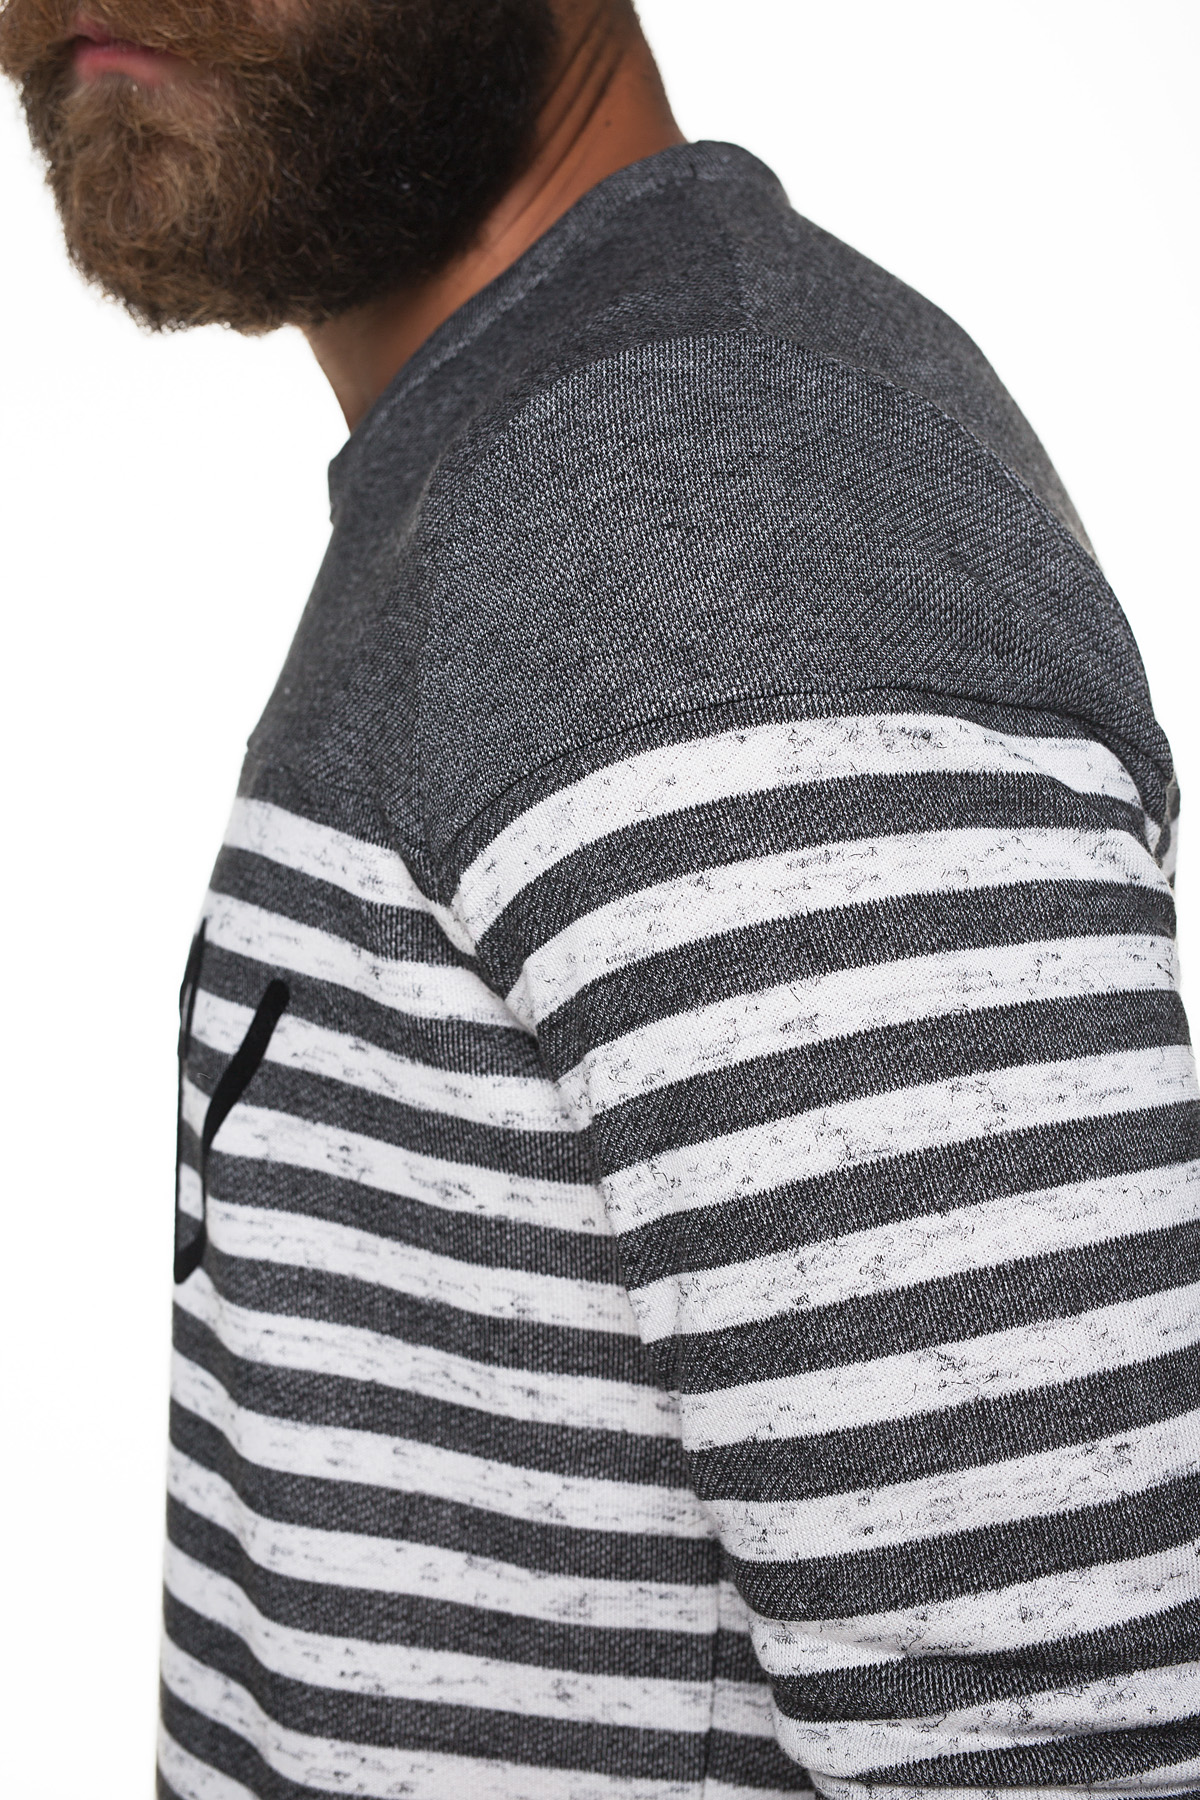 fba572c67c23 Grey striped sweater with flock printing - P COC